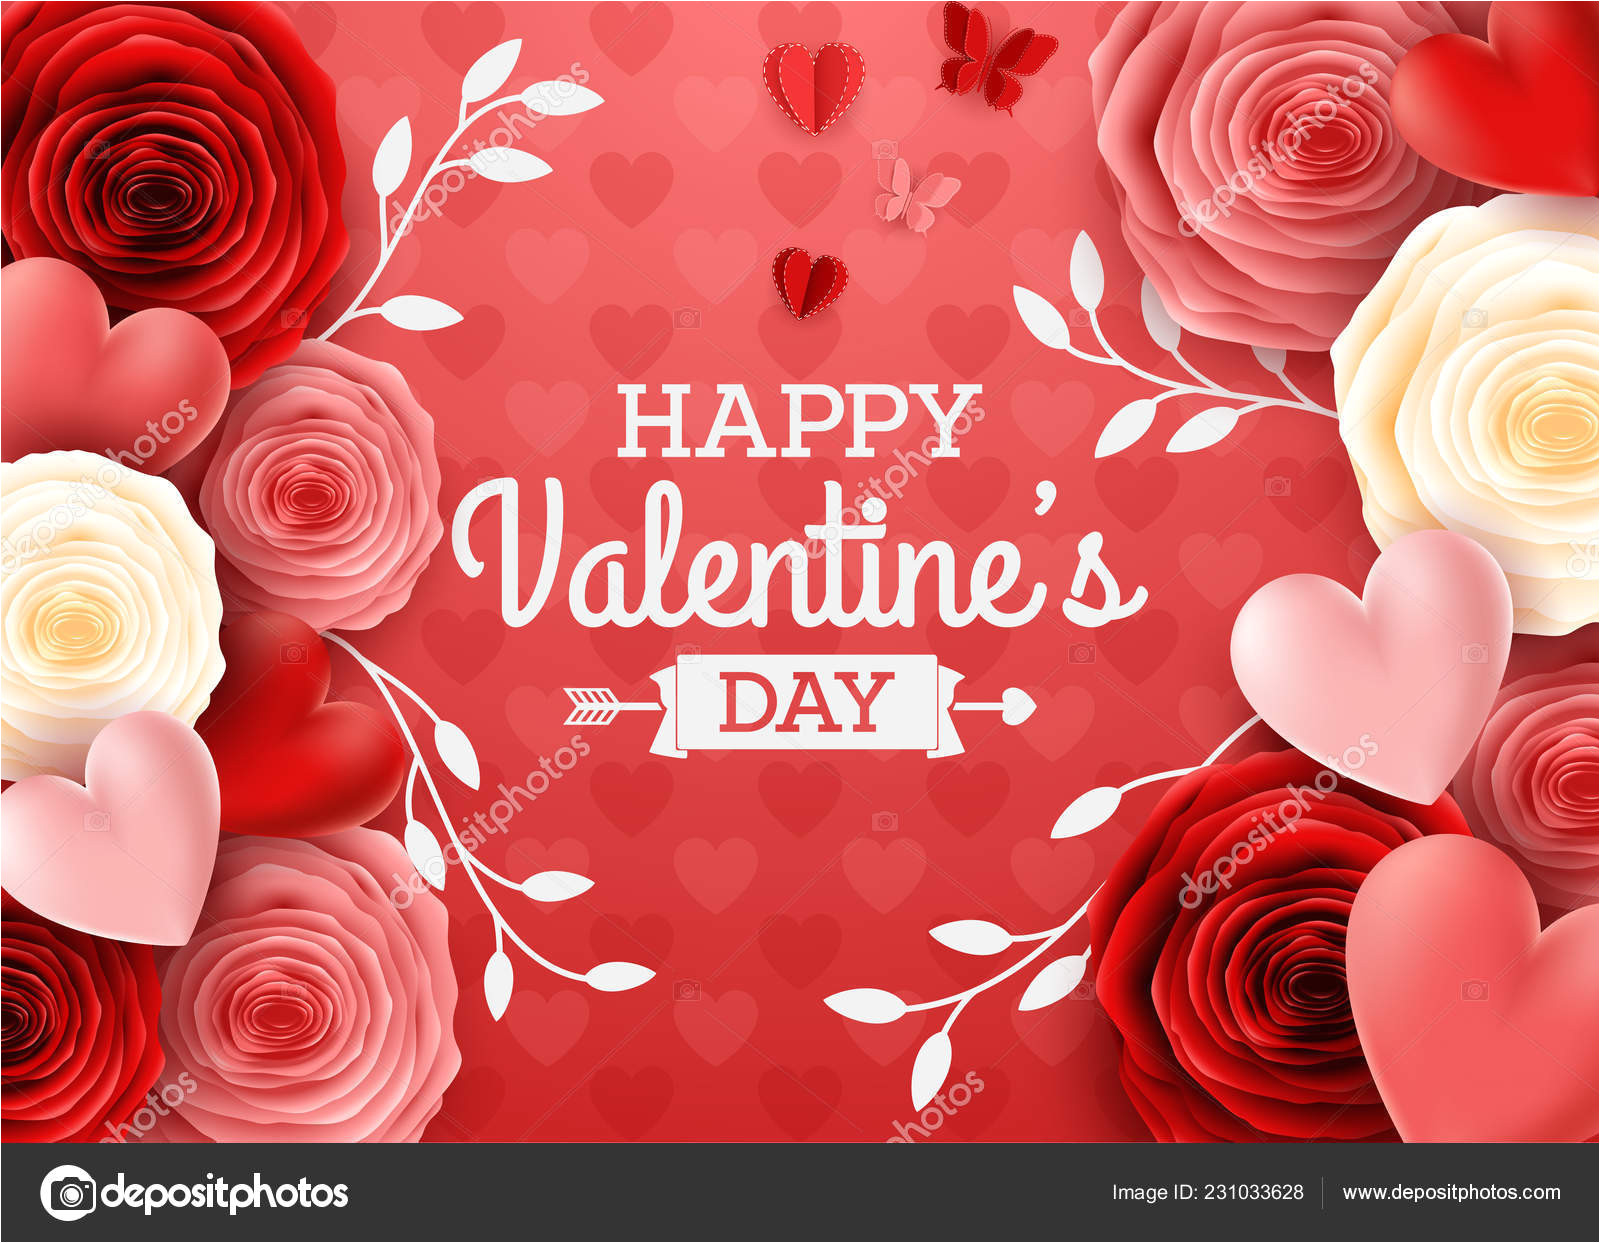 depositphotos 231033628 stock illustration valentines day greeting card rose jpg